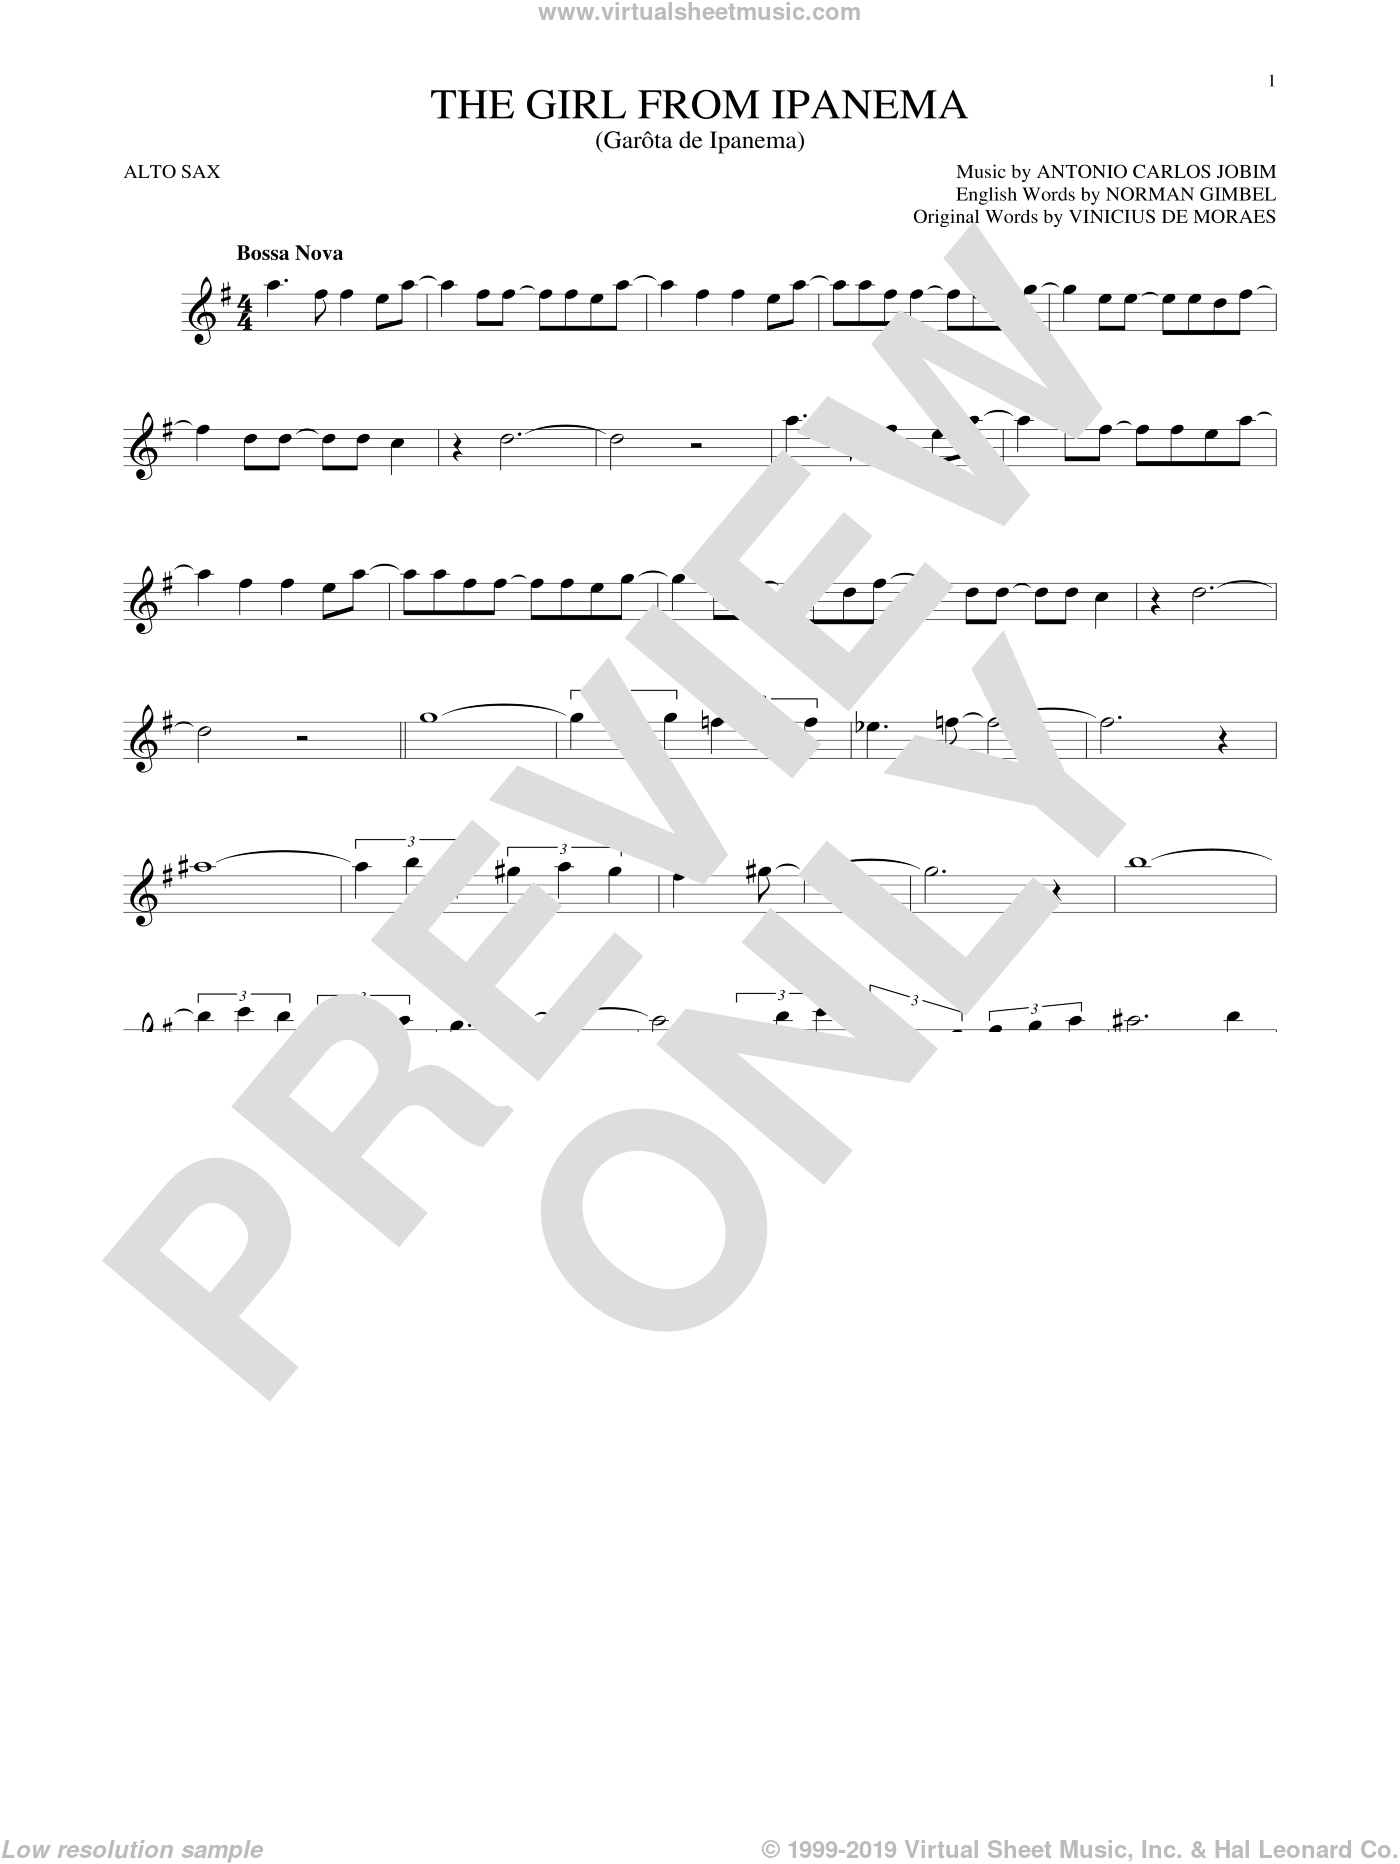 The Girl From Ipanema sheet music for alto saxophone solo by Vinicius de Moraes, Stan Getz & Astrud Gilberto, Antonio Carlos Jobim and Norman Gimbel. Score Image Preview.